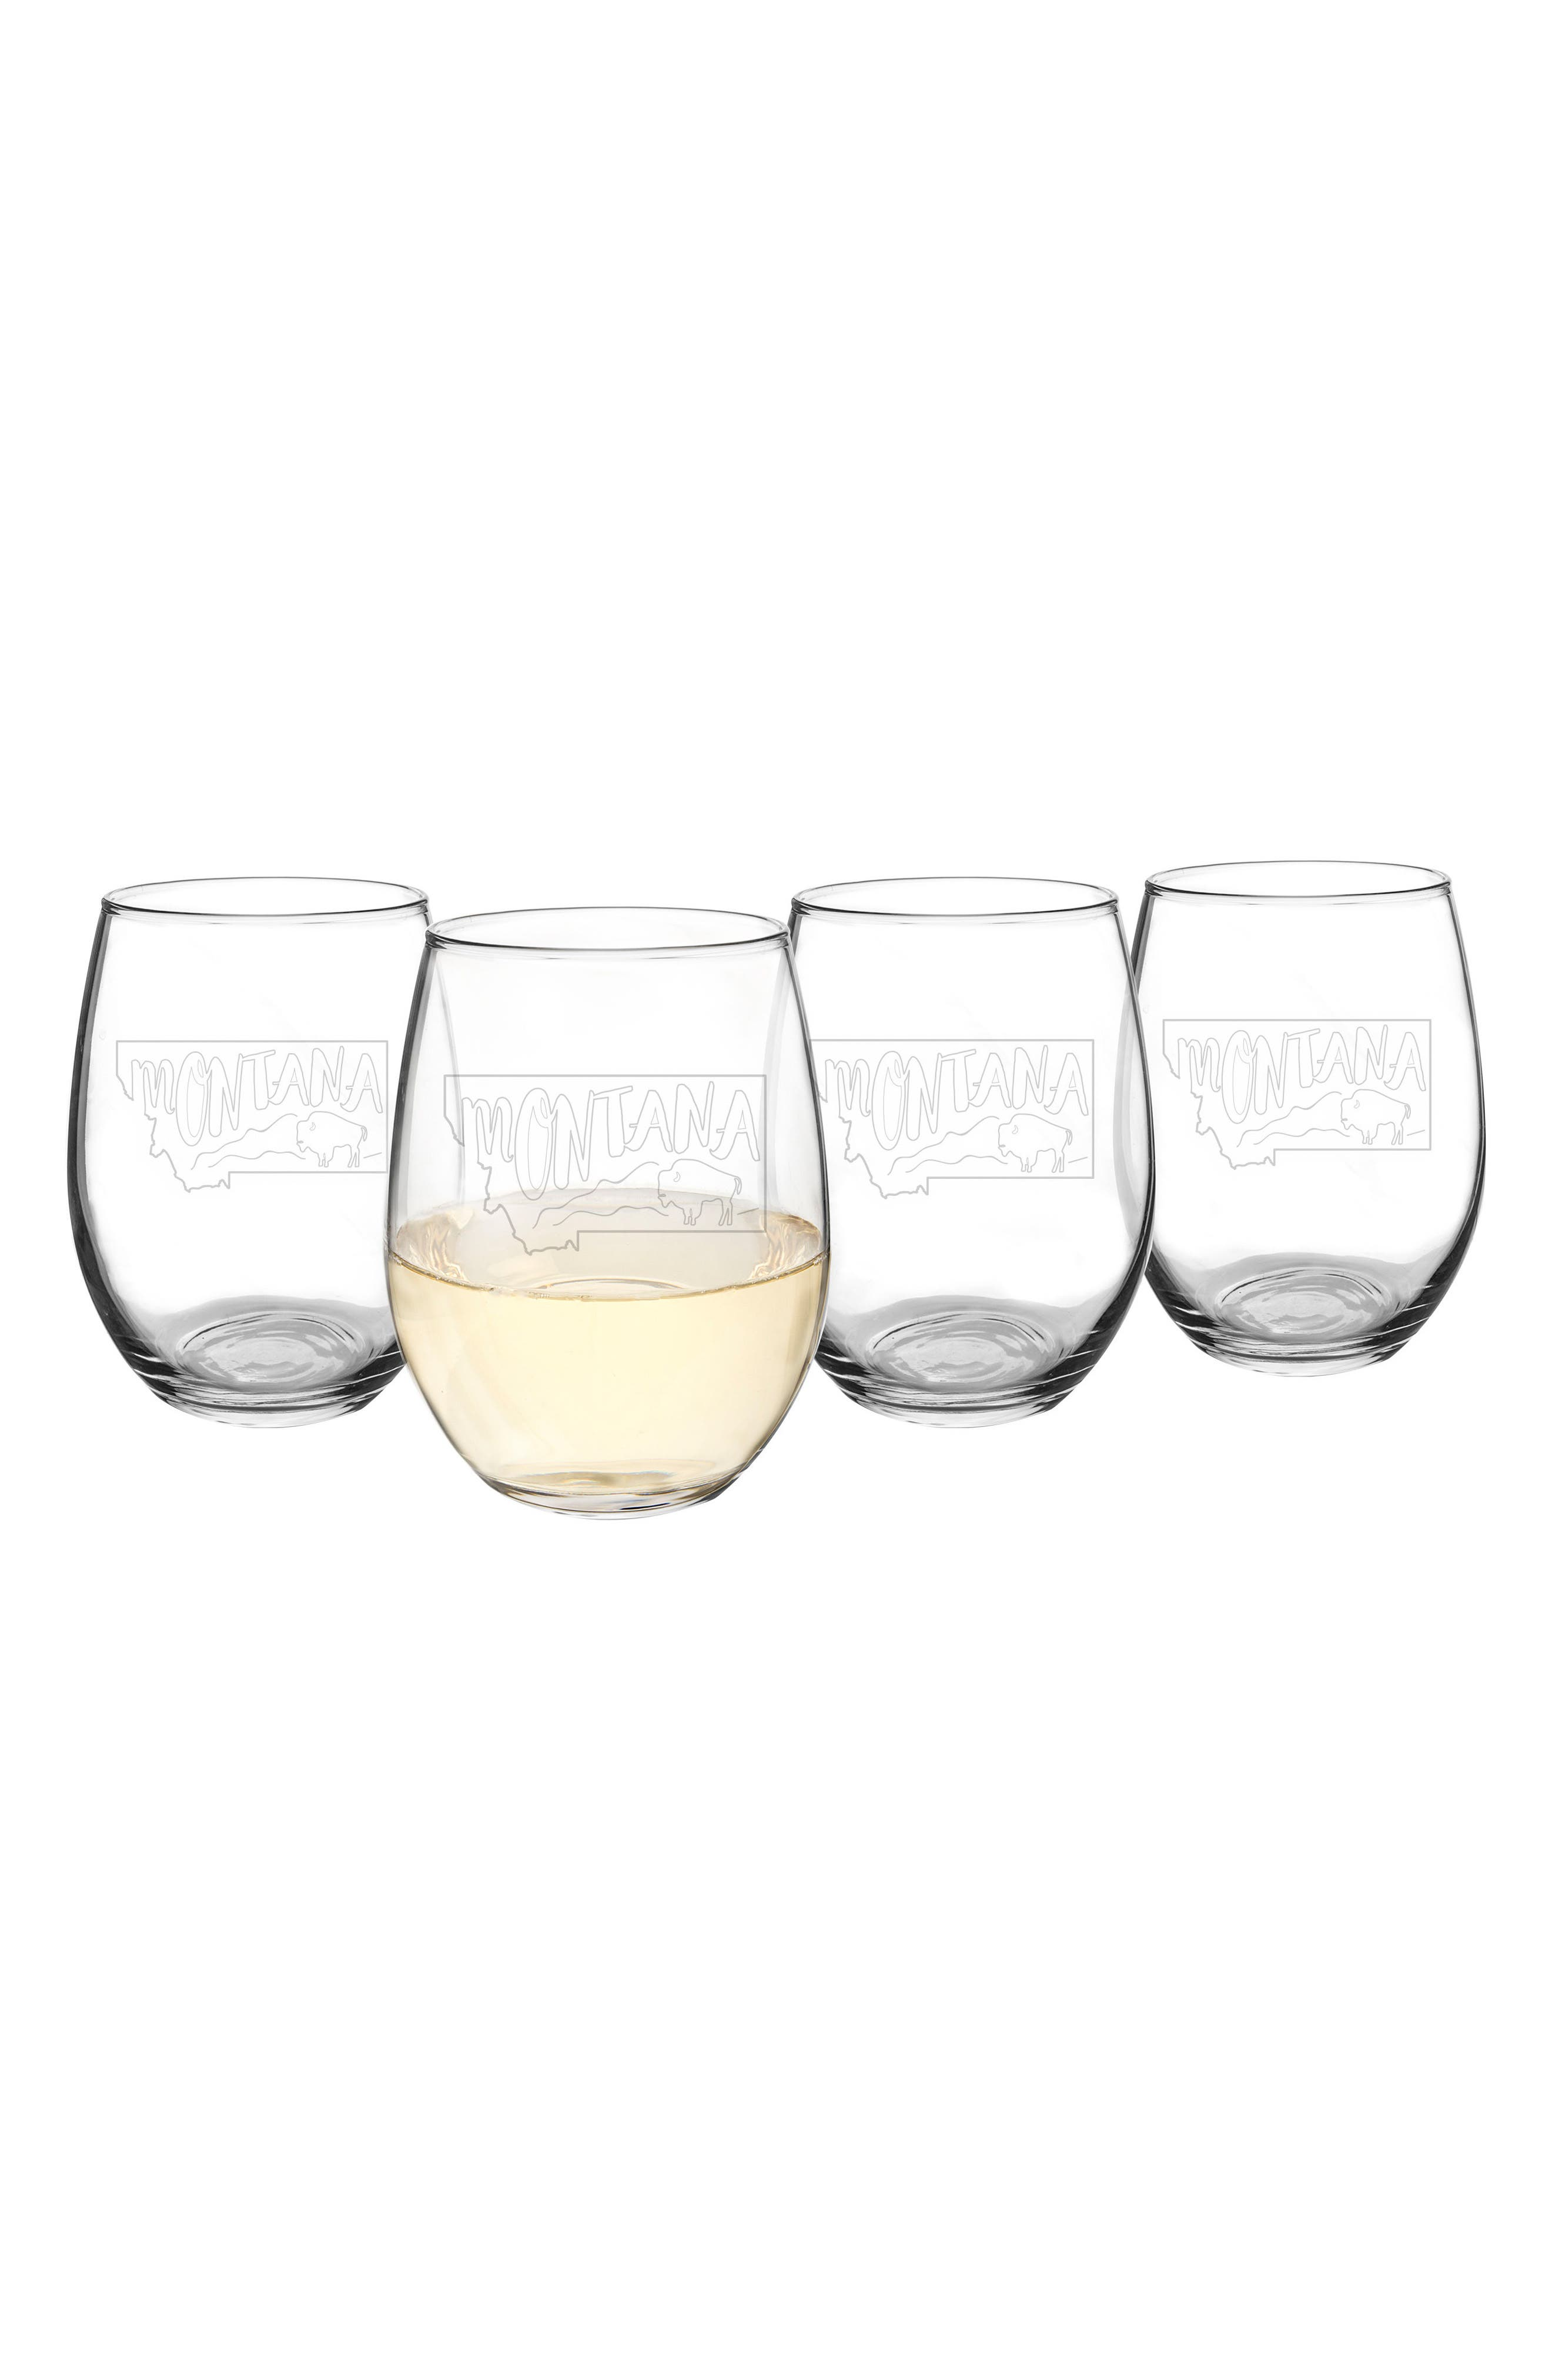 Cathy's Concepts State Set of 4 Stemless Wine Glasses